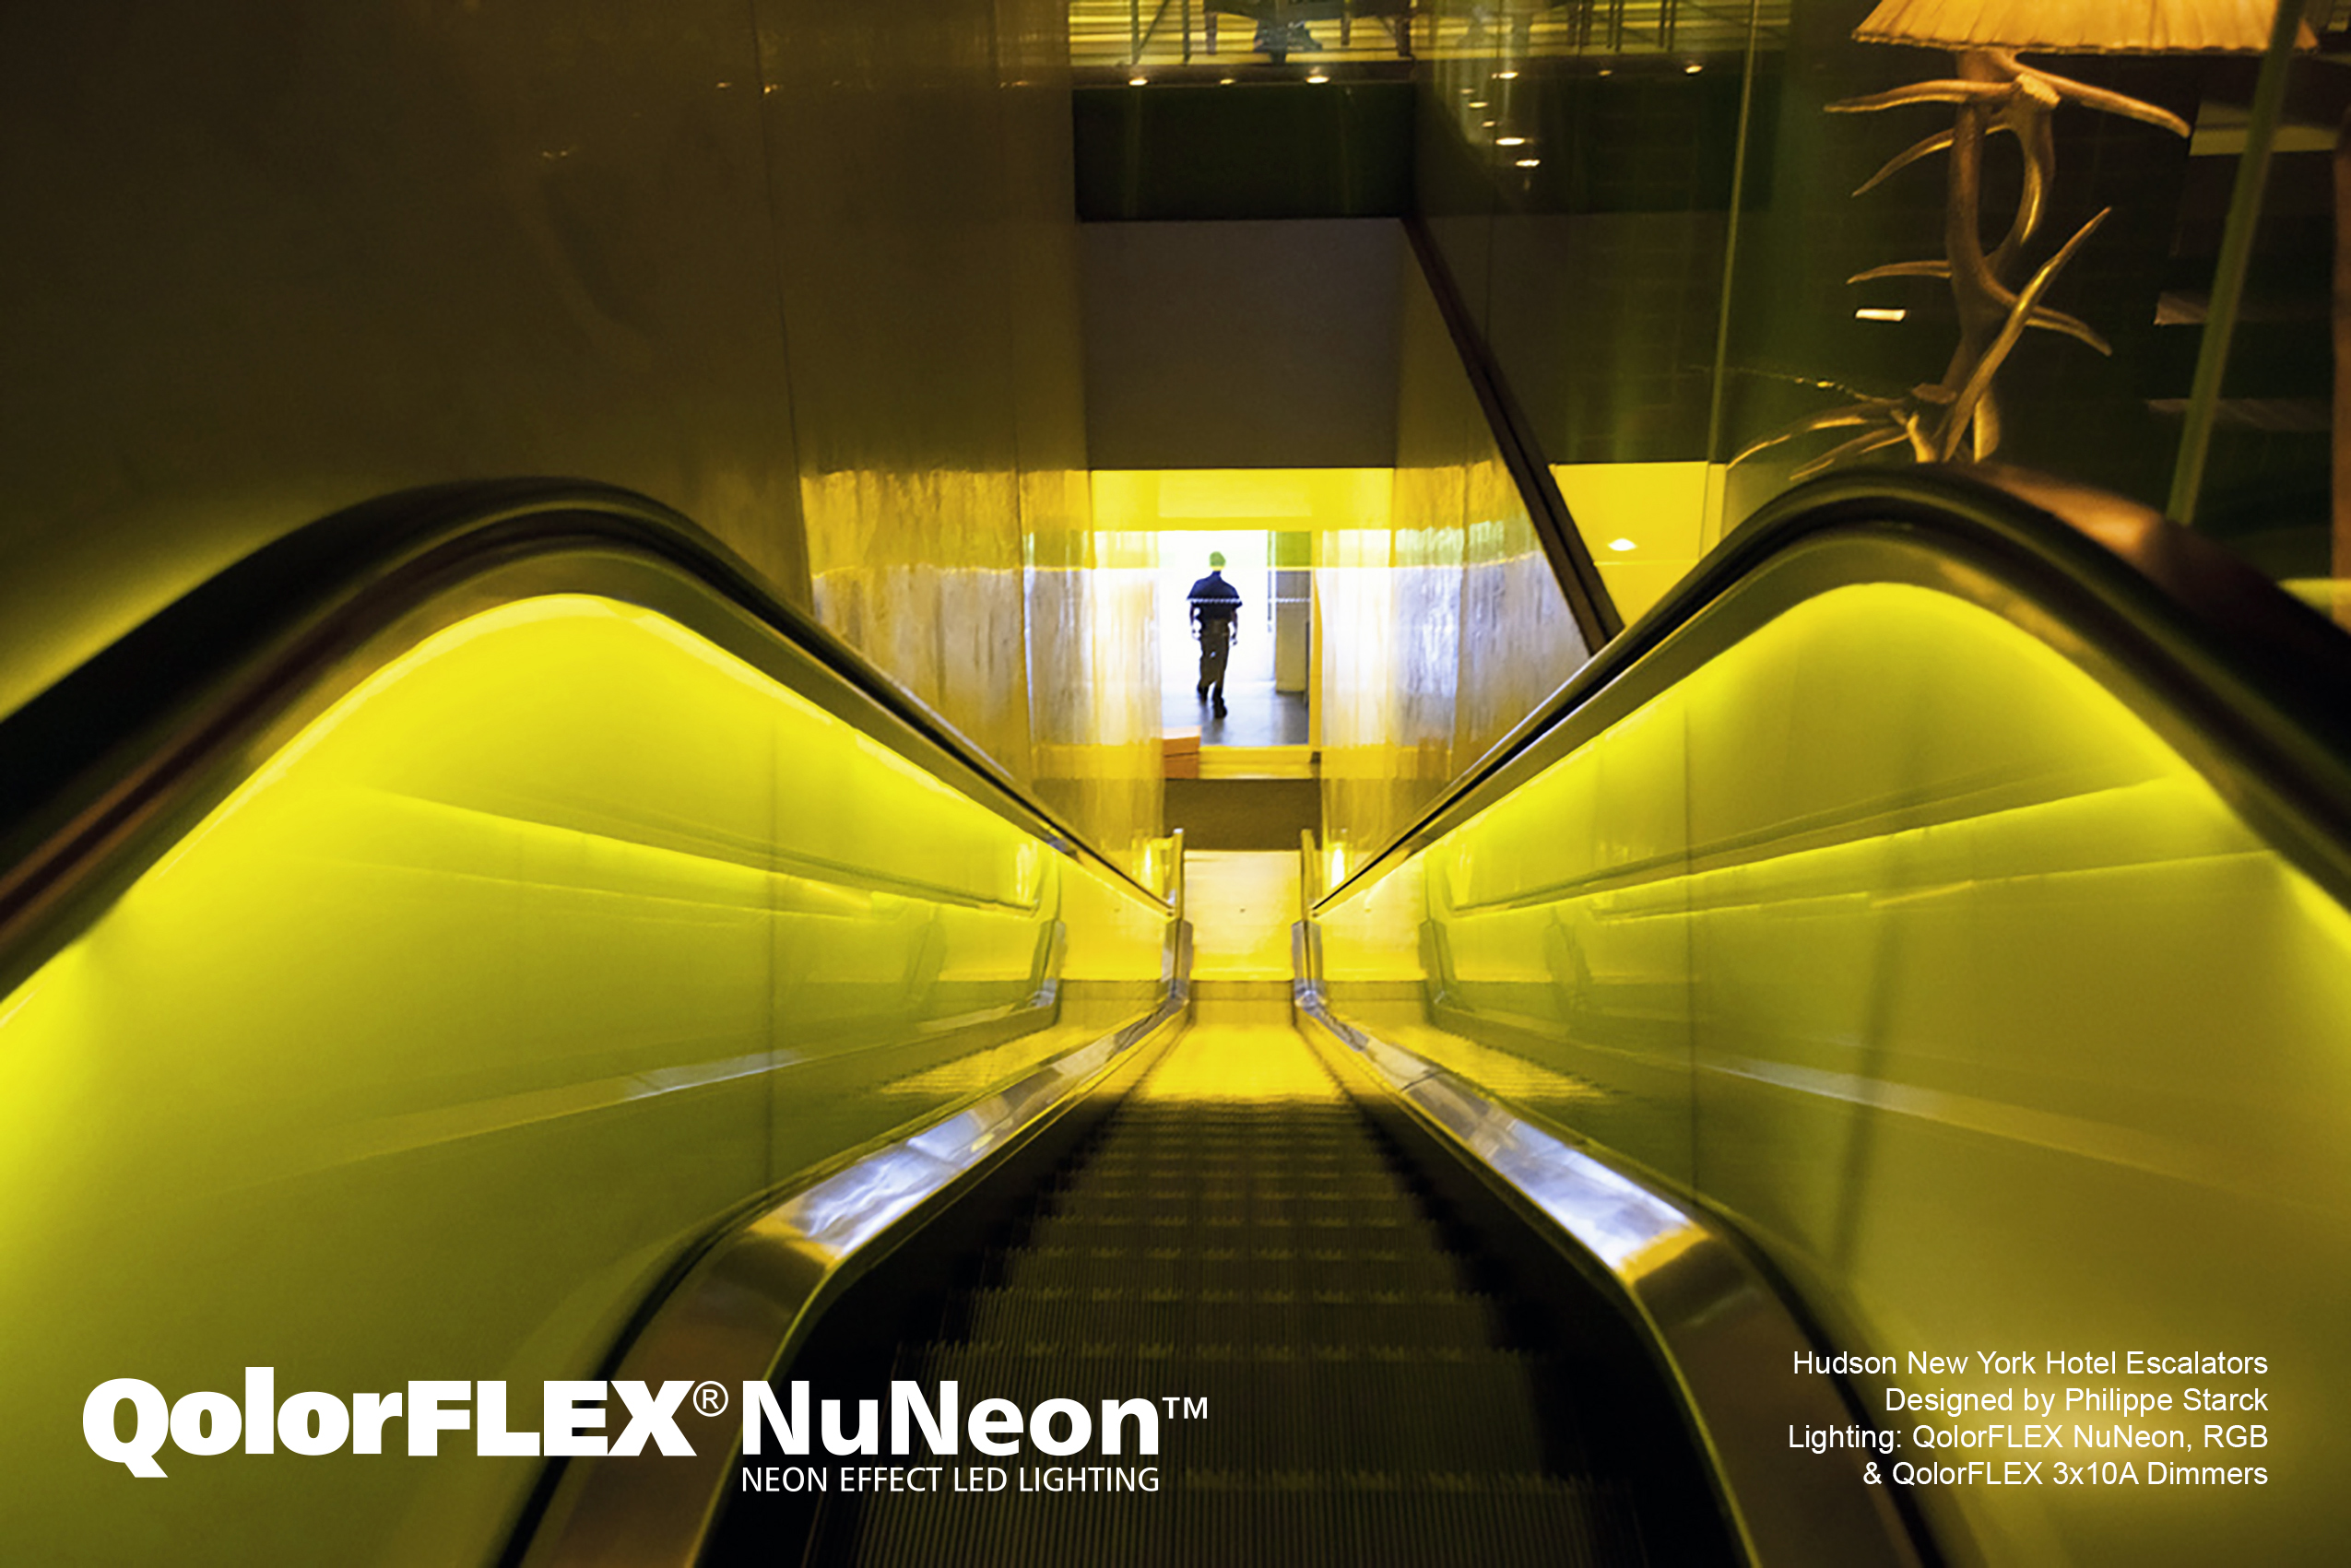 QolorFLEX NuNeon at the Hudson New York escalators